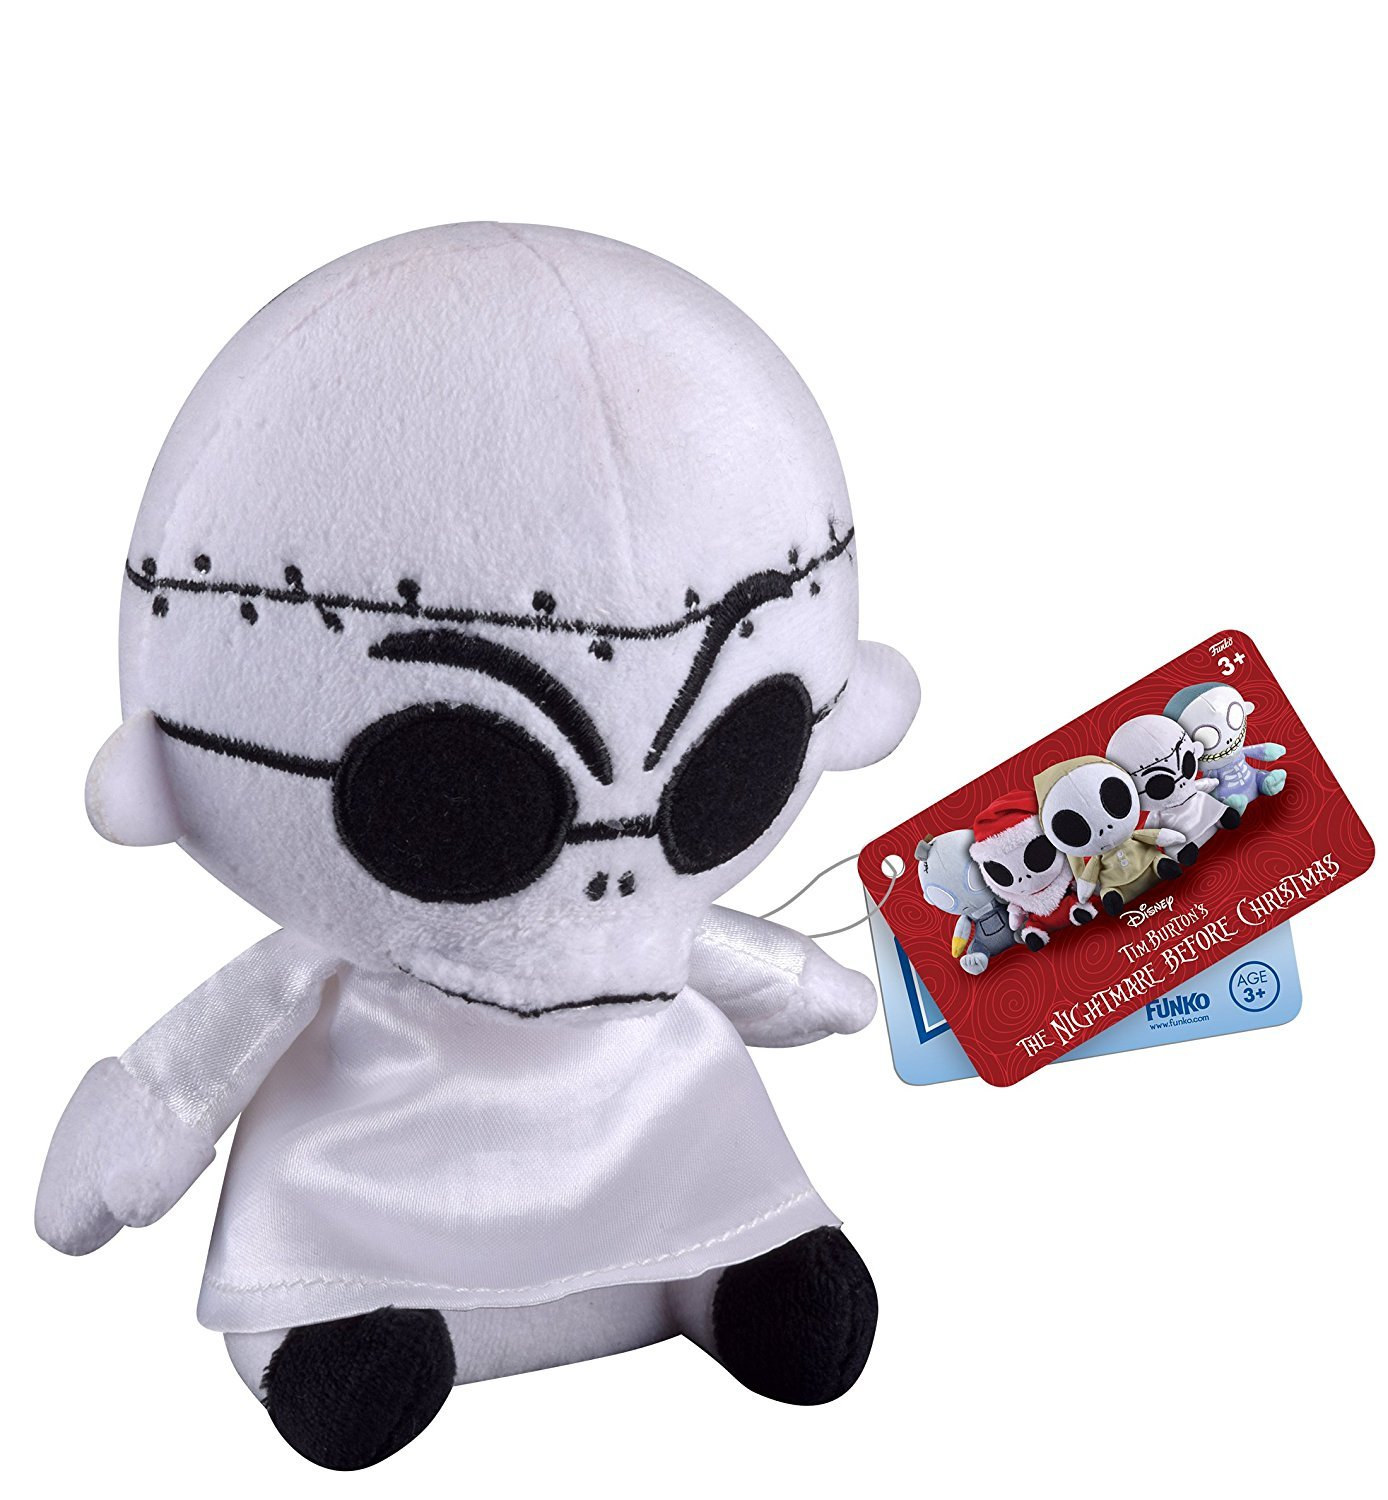 Funko Nightmare Before Christmas Mopeez Plush